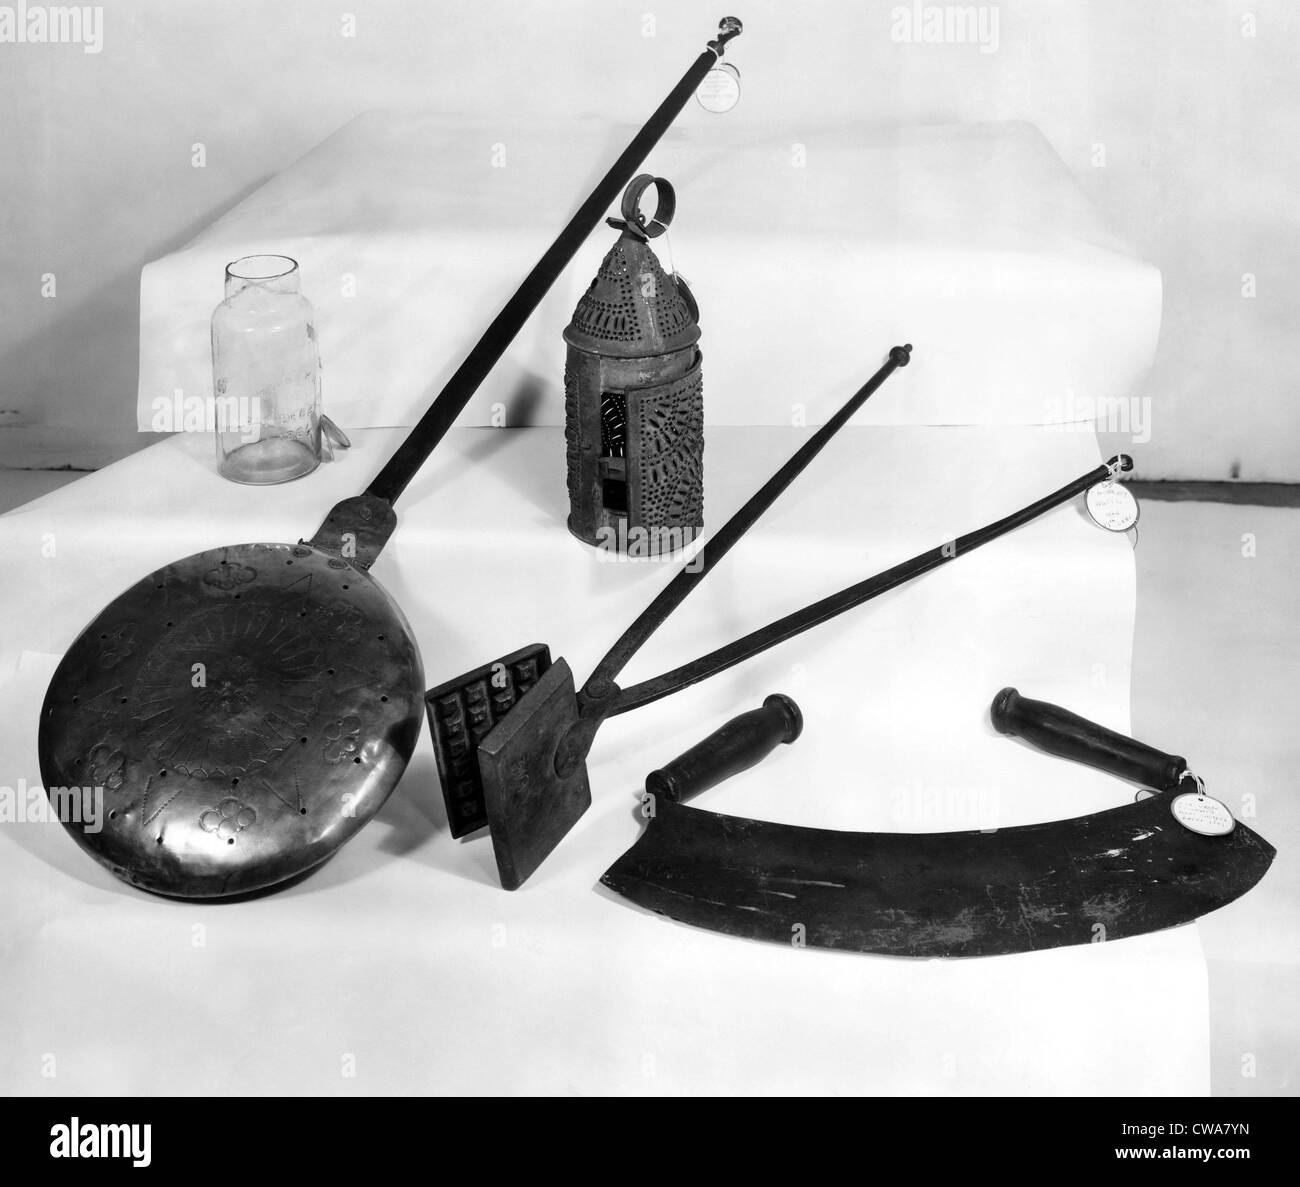 Kitchenware, Early American household appliances, l-r: fruit jar, brass bed warmer, town crier's lantern (back), - Stock Image